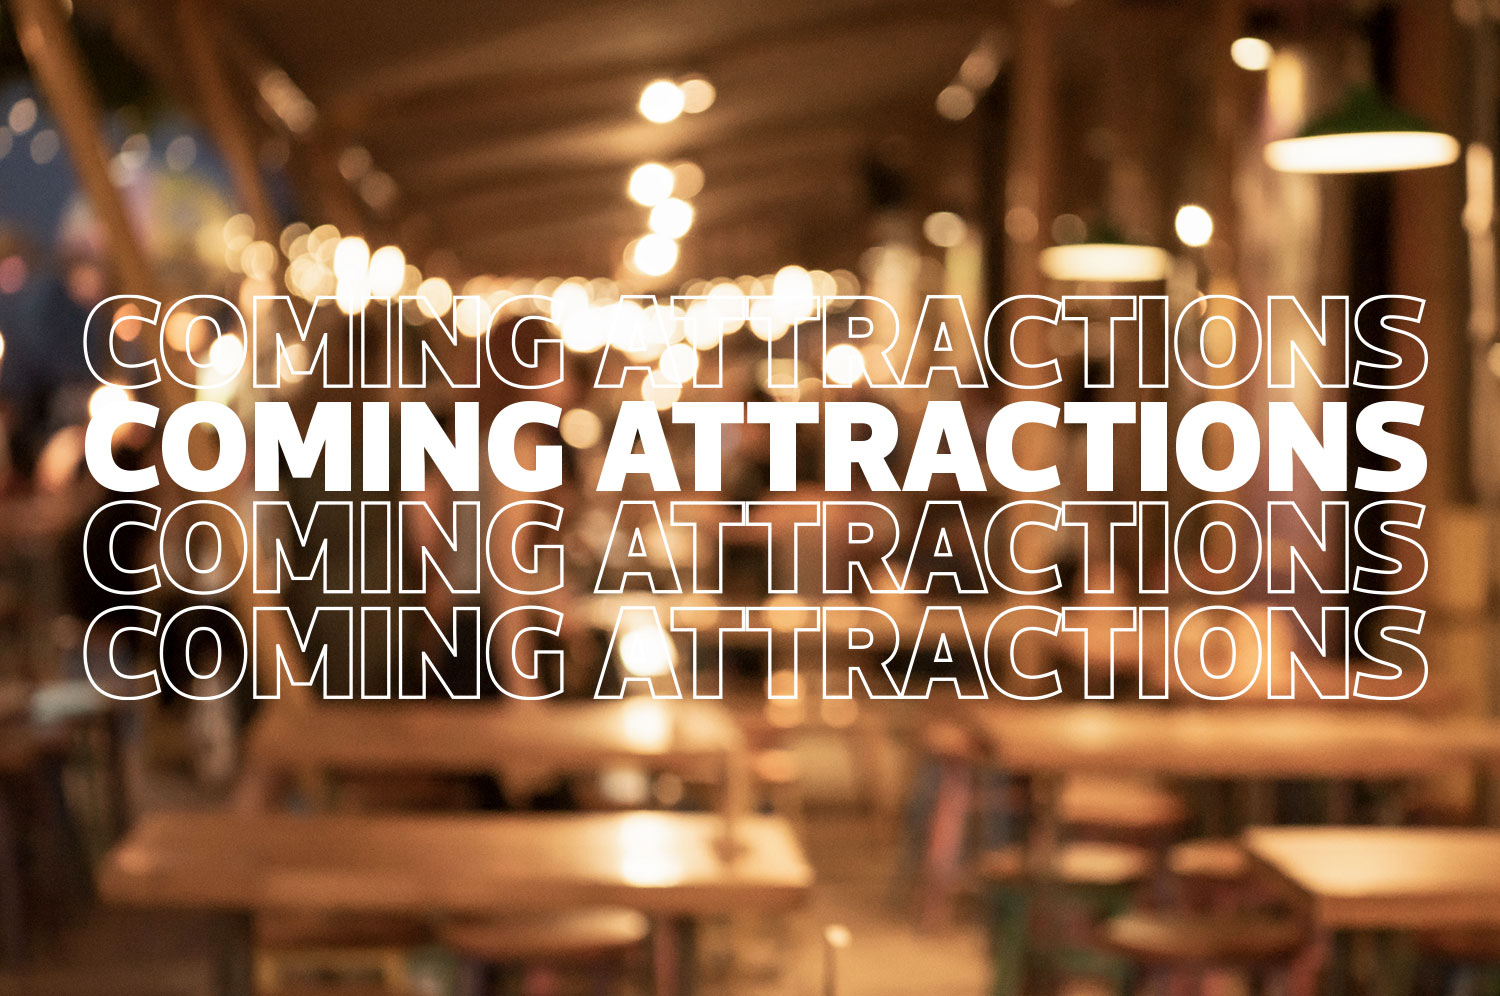 Coming Attractions title over top a fairly light lit restaurant patio with two rows of tables